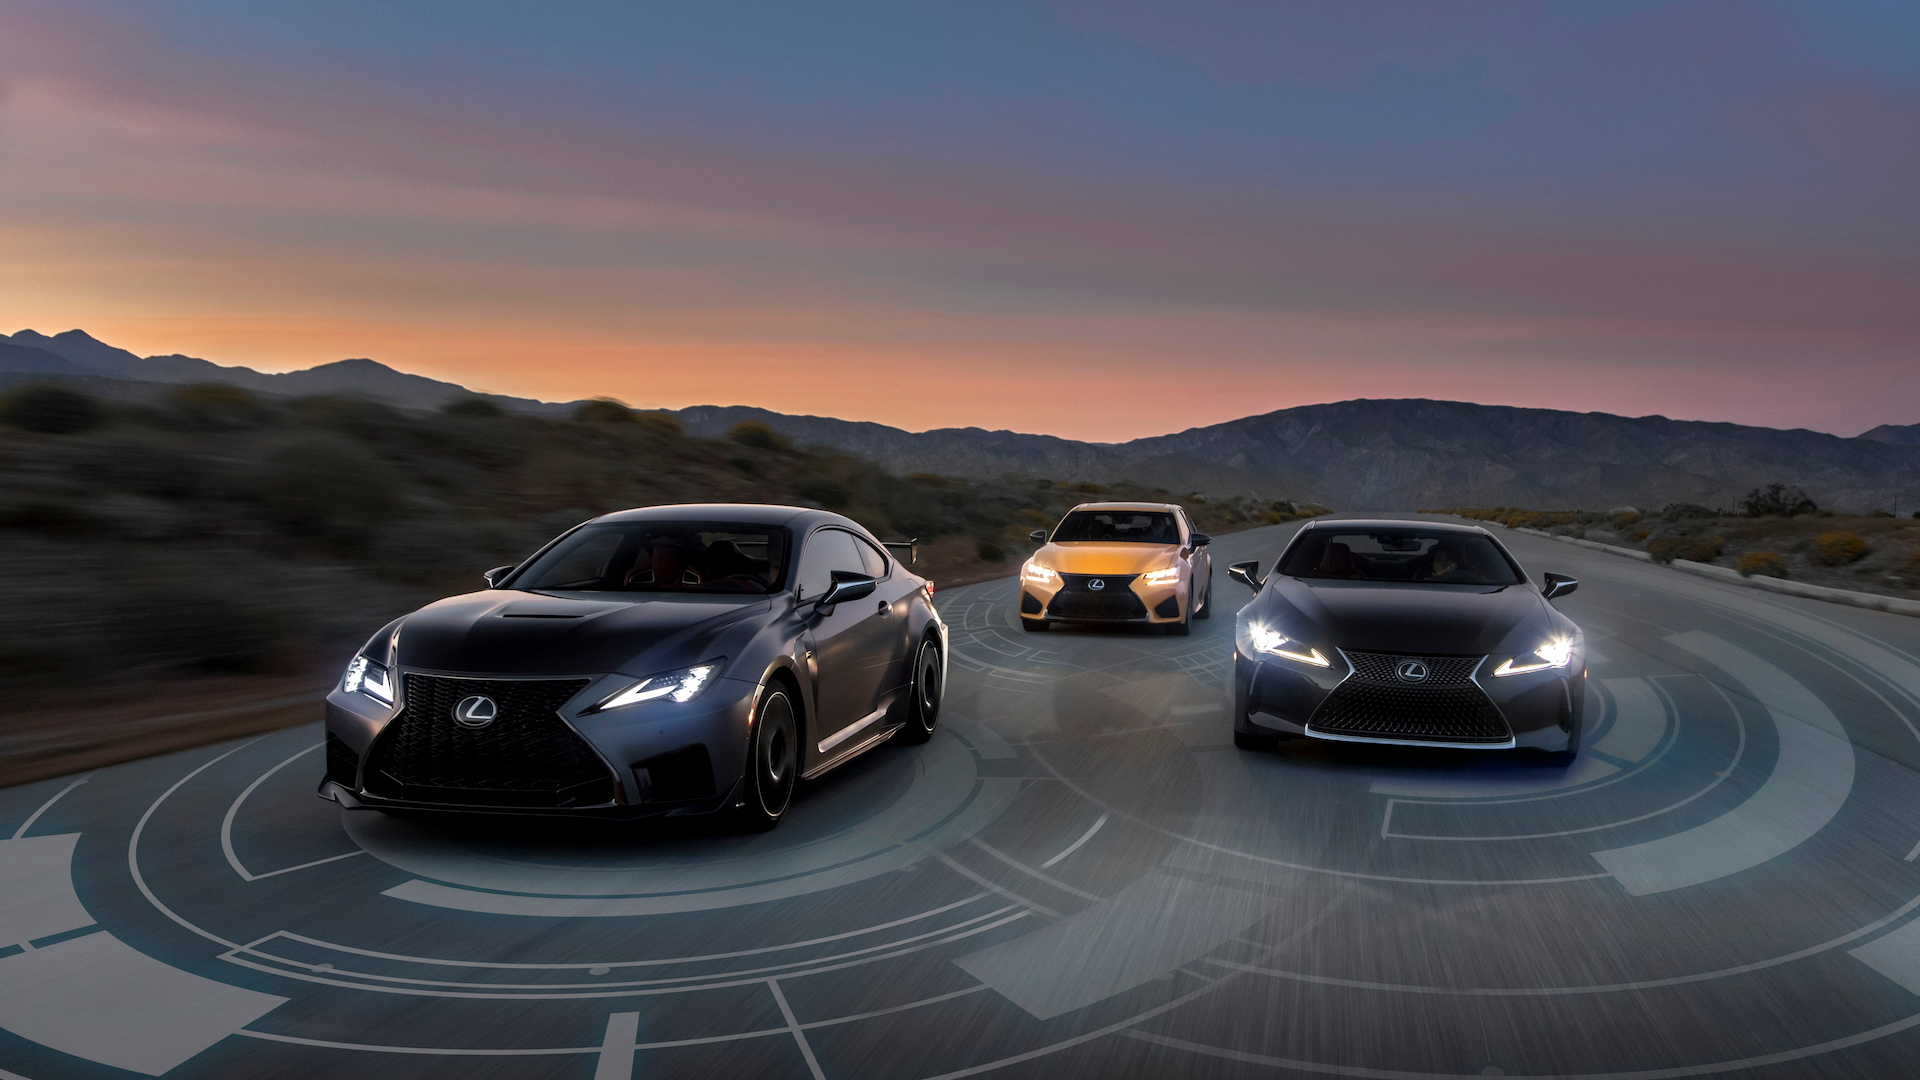 Lexus active safety equipment standard on every 2020 model